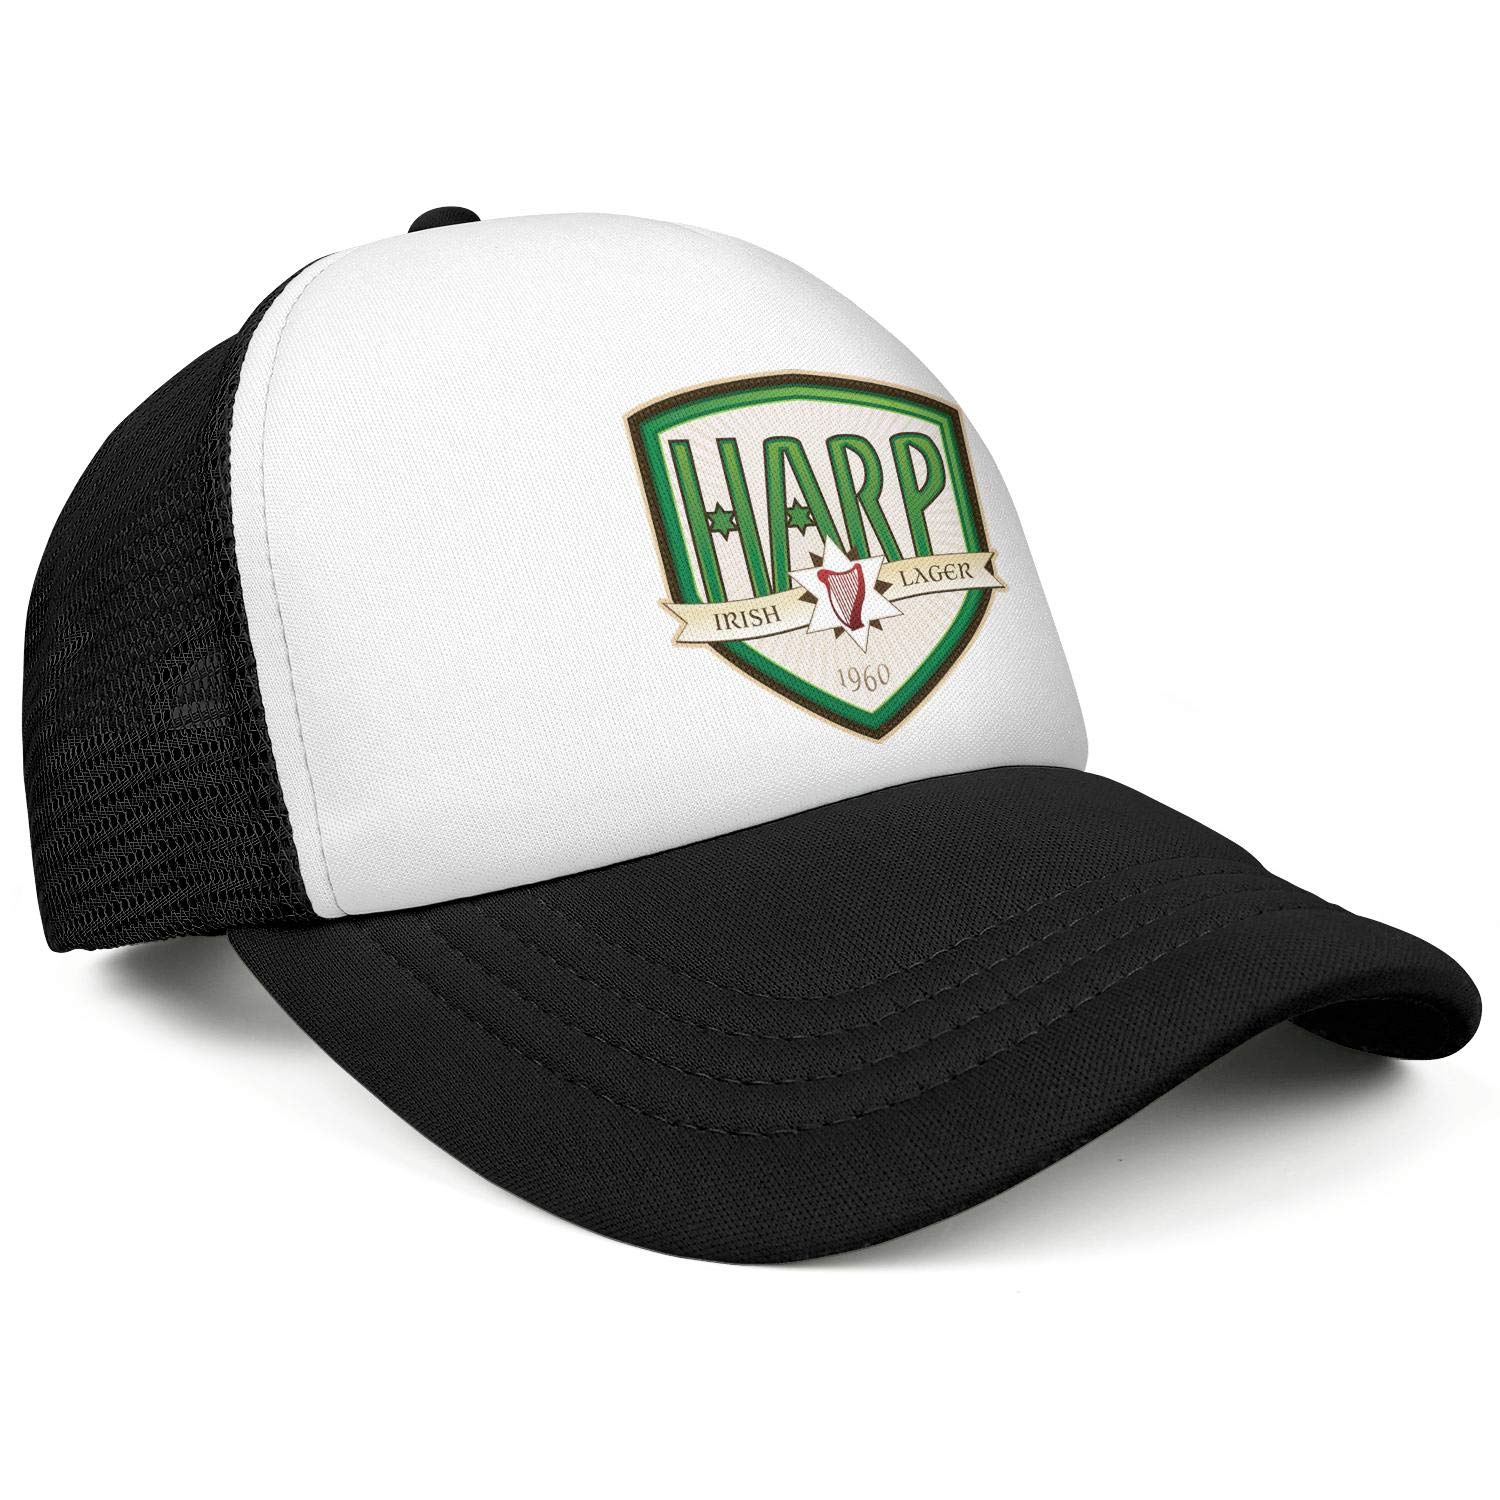 Adjustable Baseball Cap One Size Trucker Hat All Cotton Coolcaps Mens Harp-Lager-.-Logo